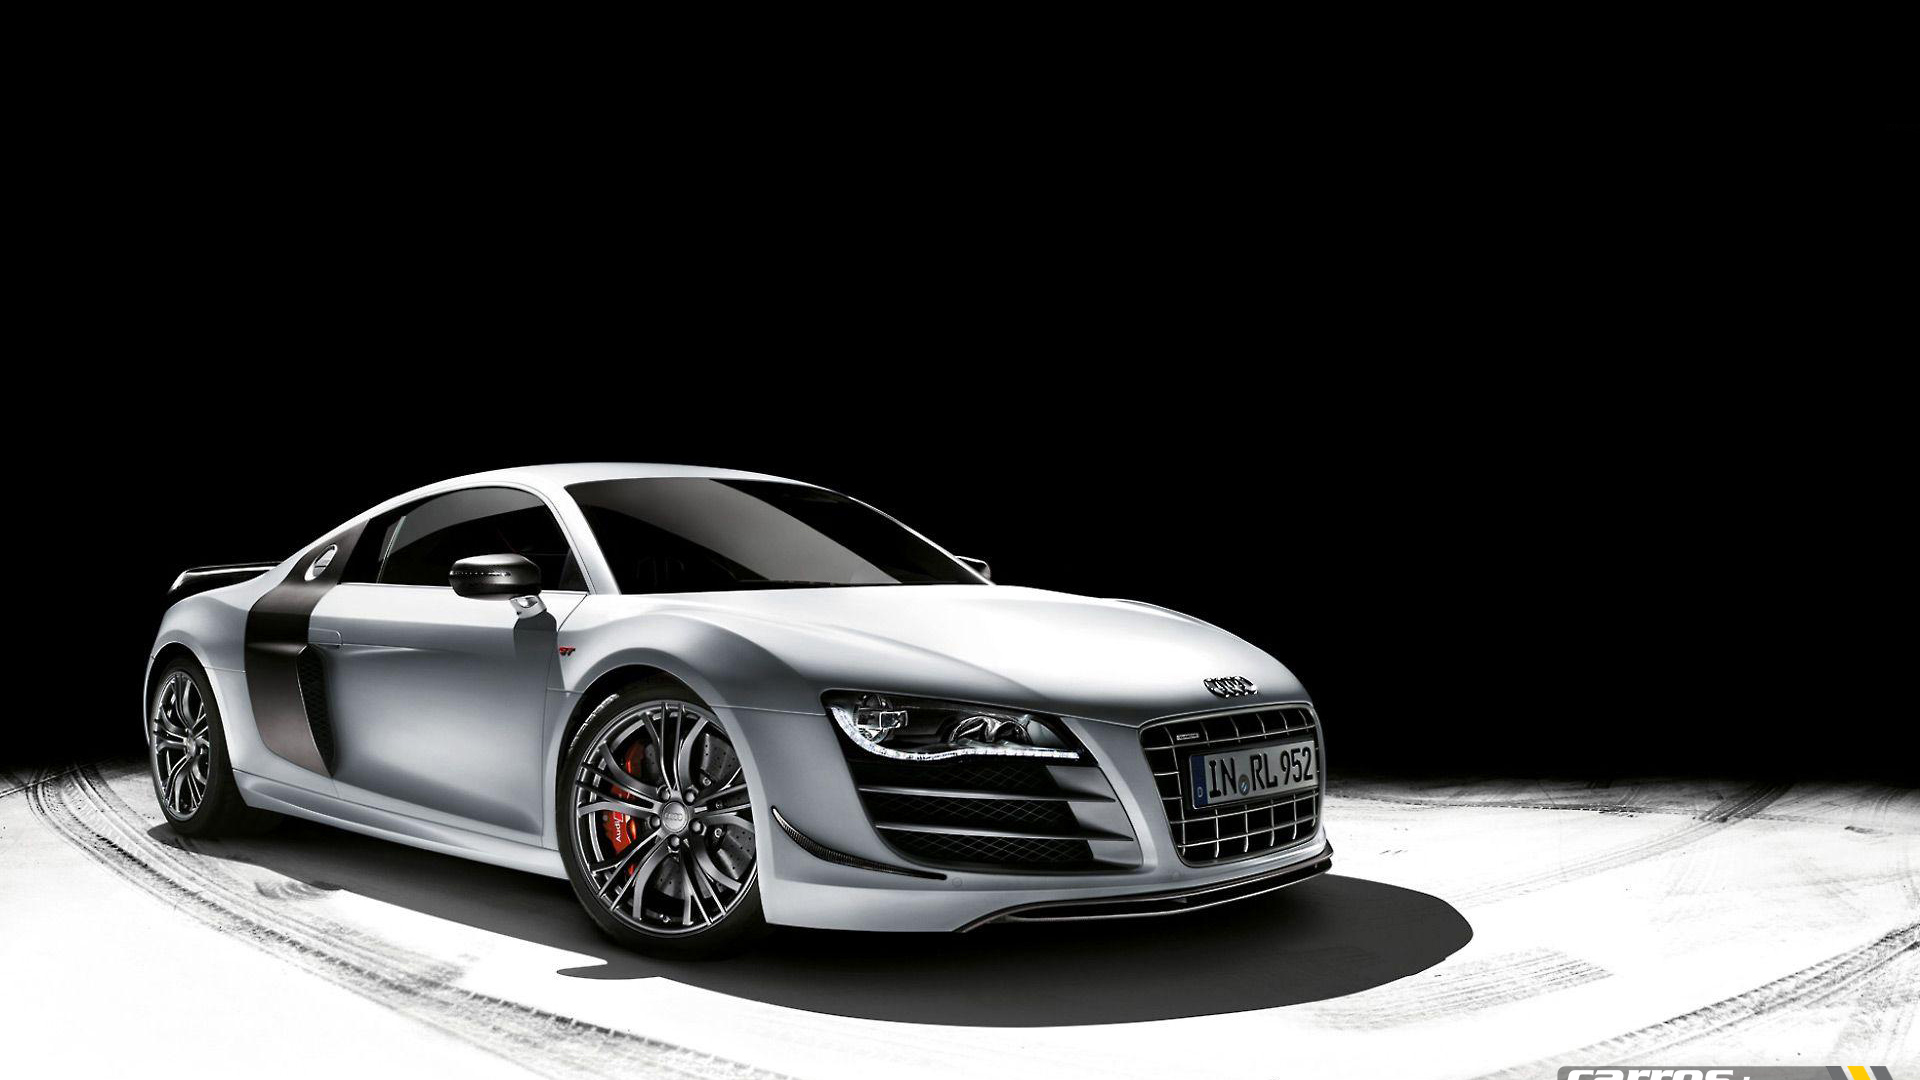 coolest hd wallpapers audi - photo #26